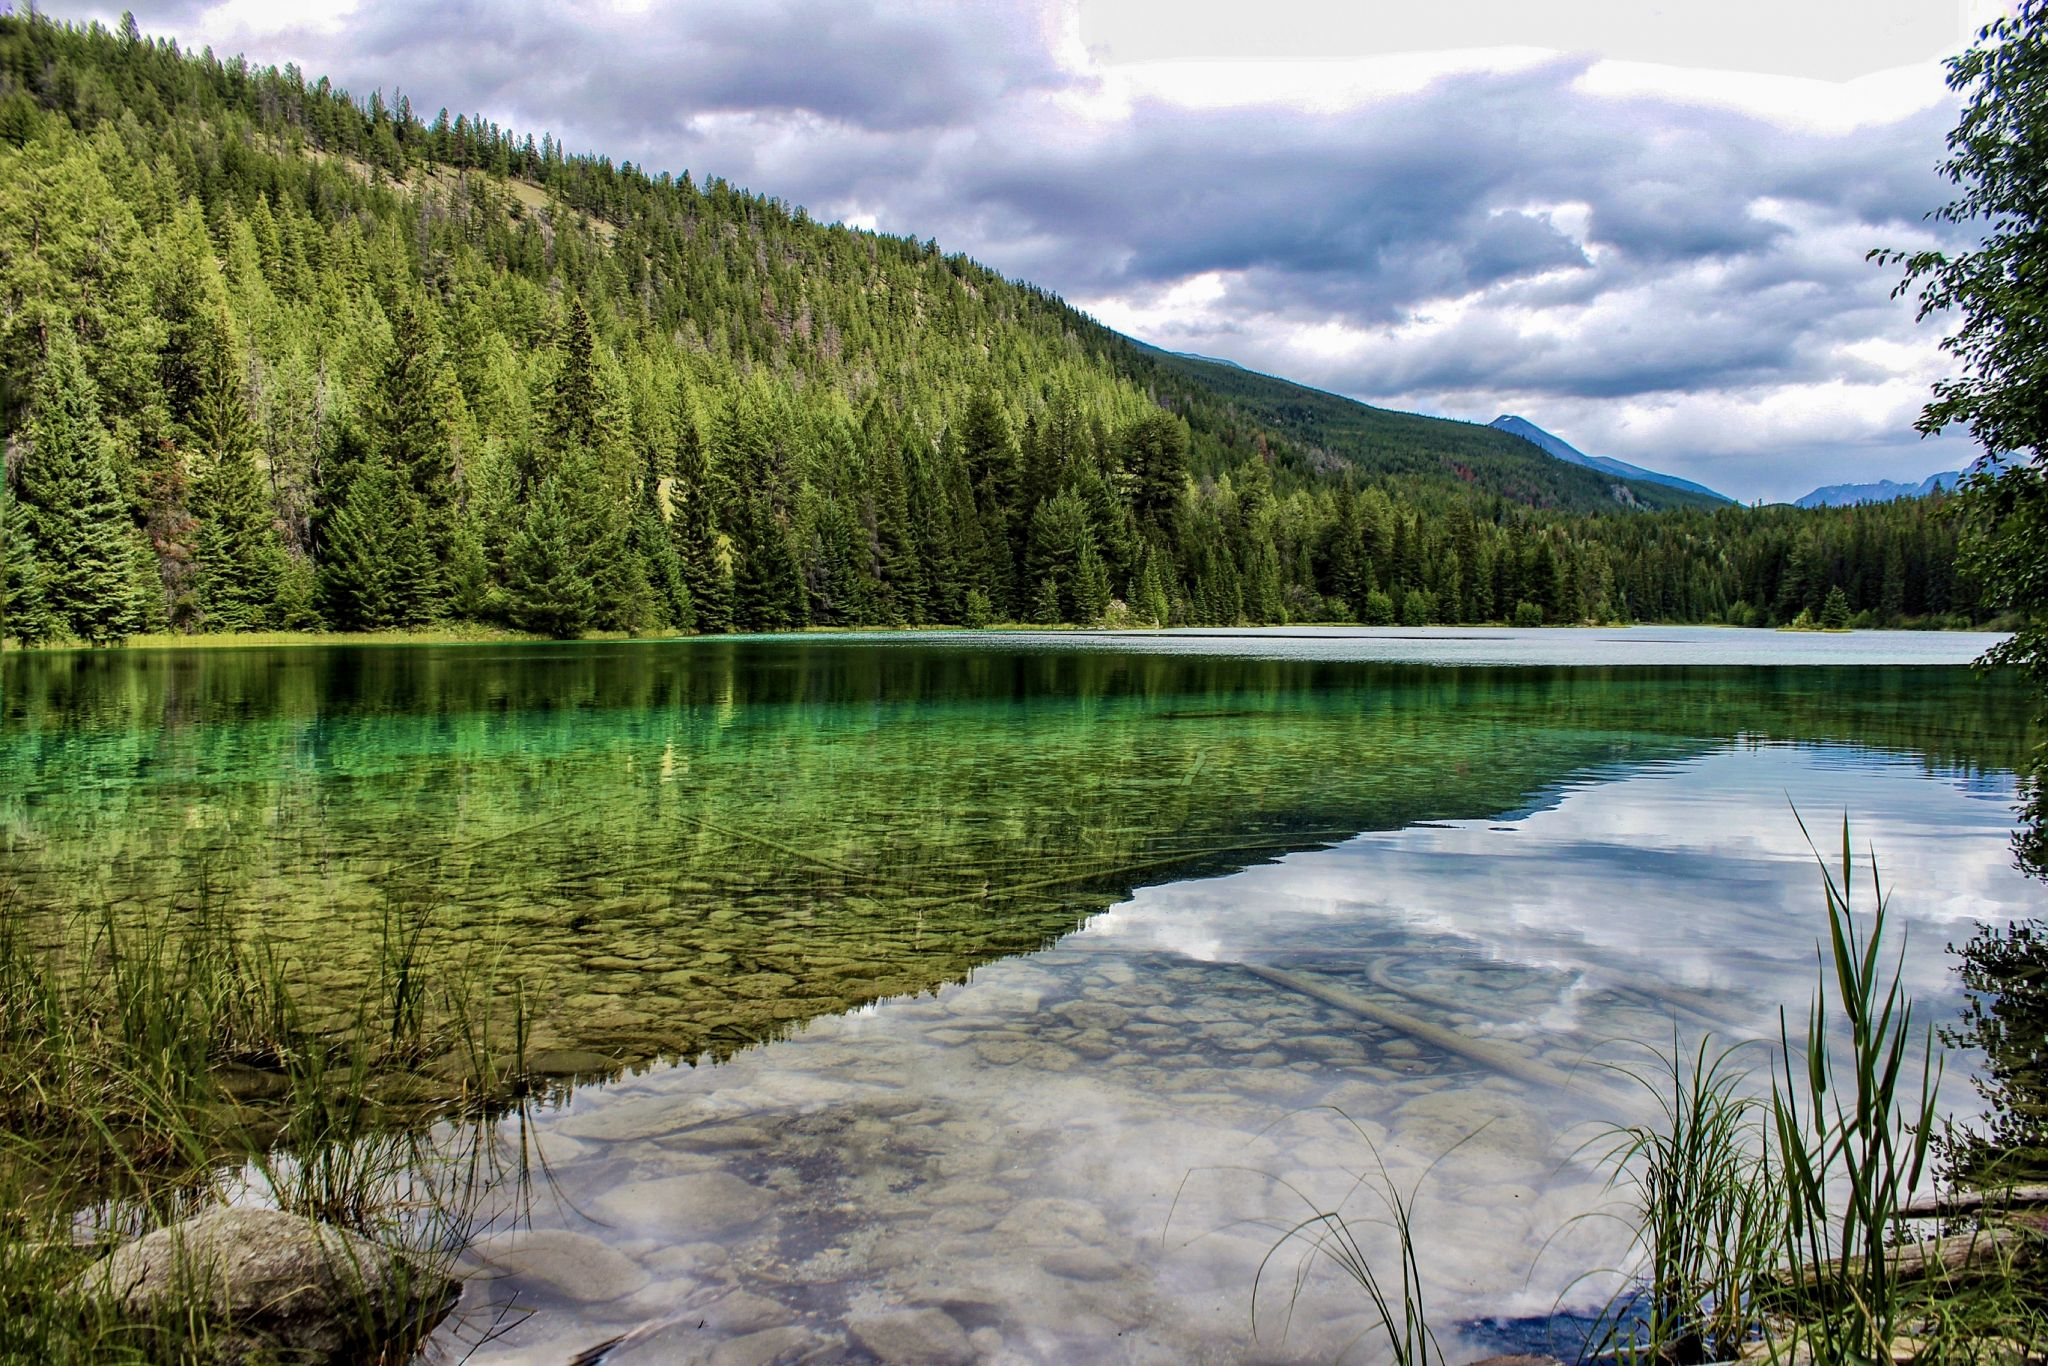 Valley of Five Lakes, Canada